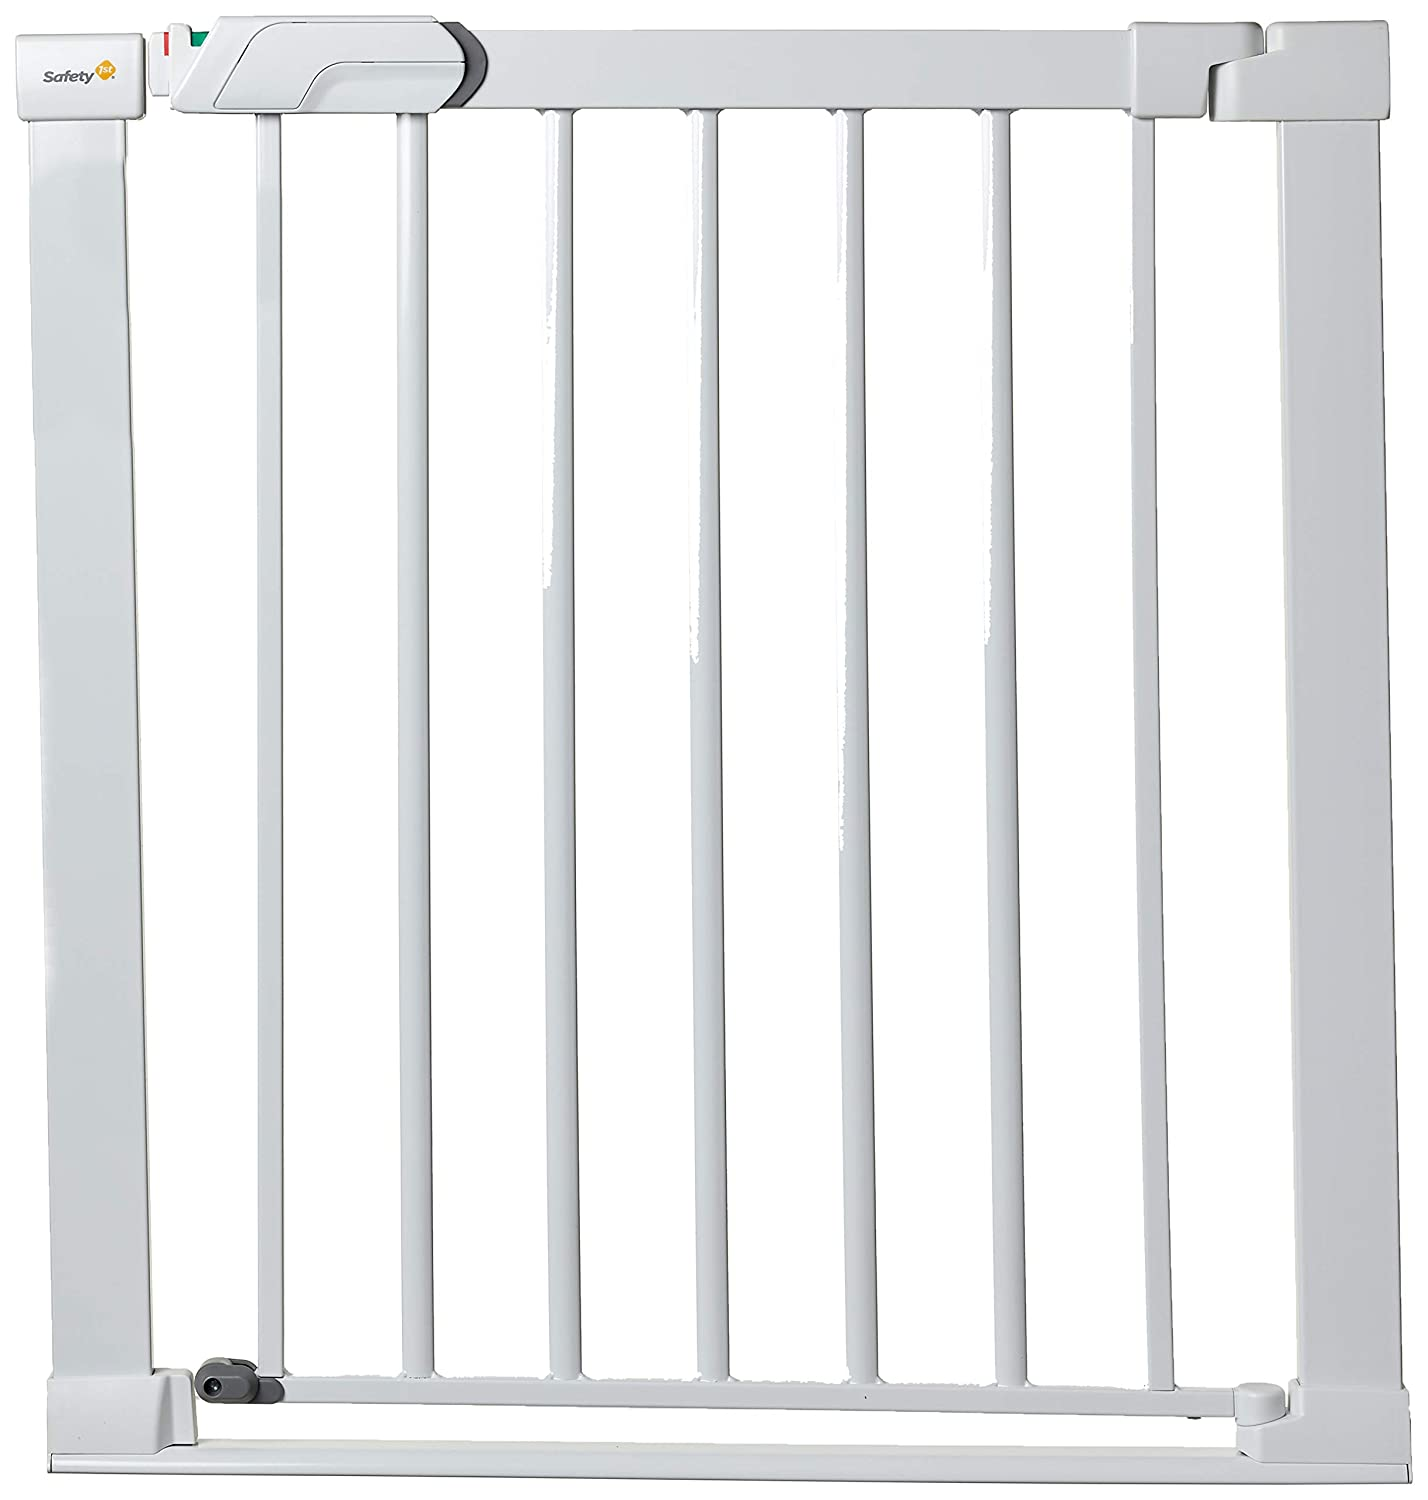 Safety 1st SecurTech Flat Step Metal Gate Dorel UK Limited 2443431010